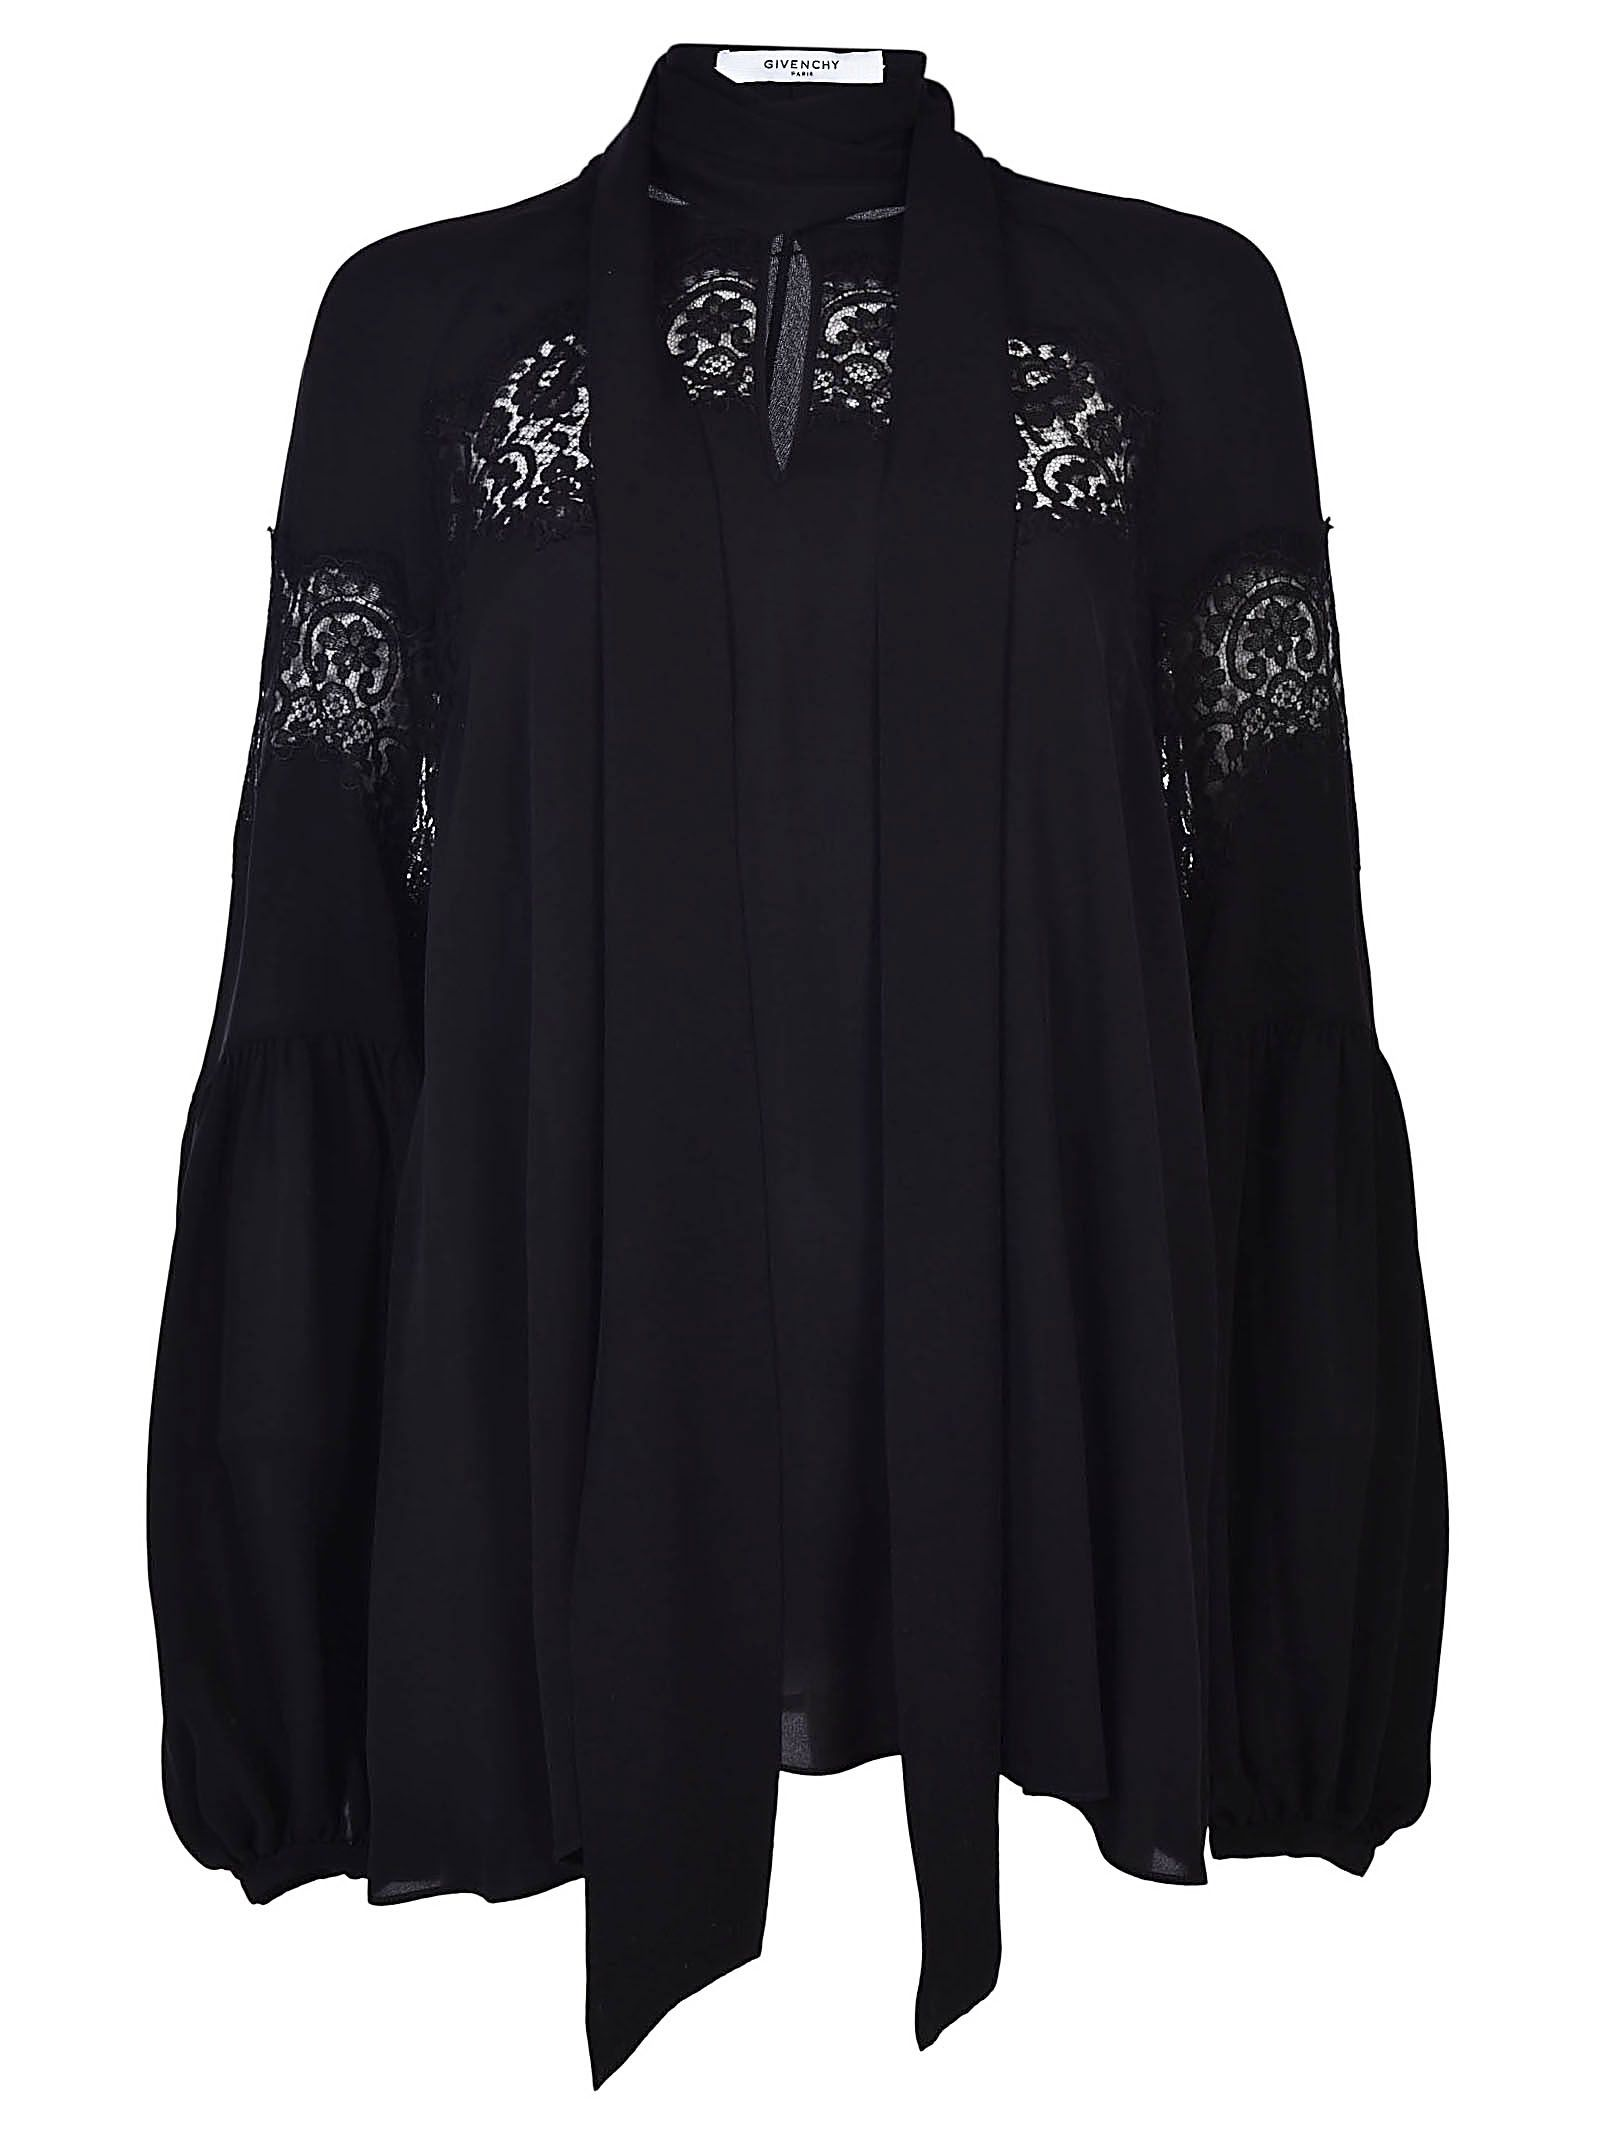 Givenchy Pussy Bow Blouse